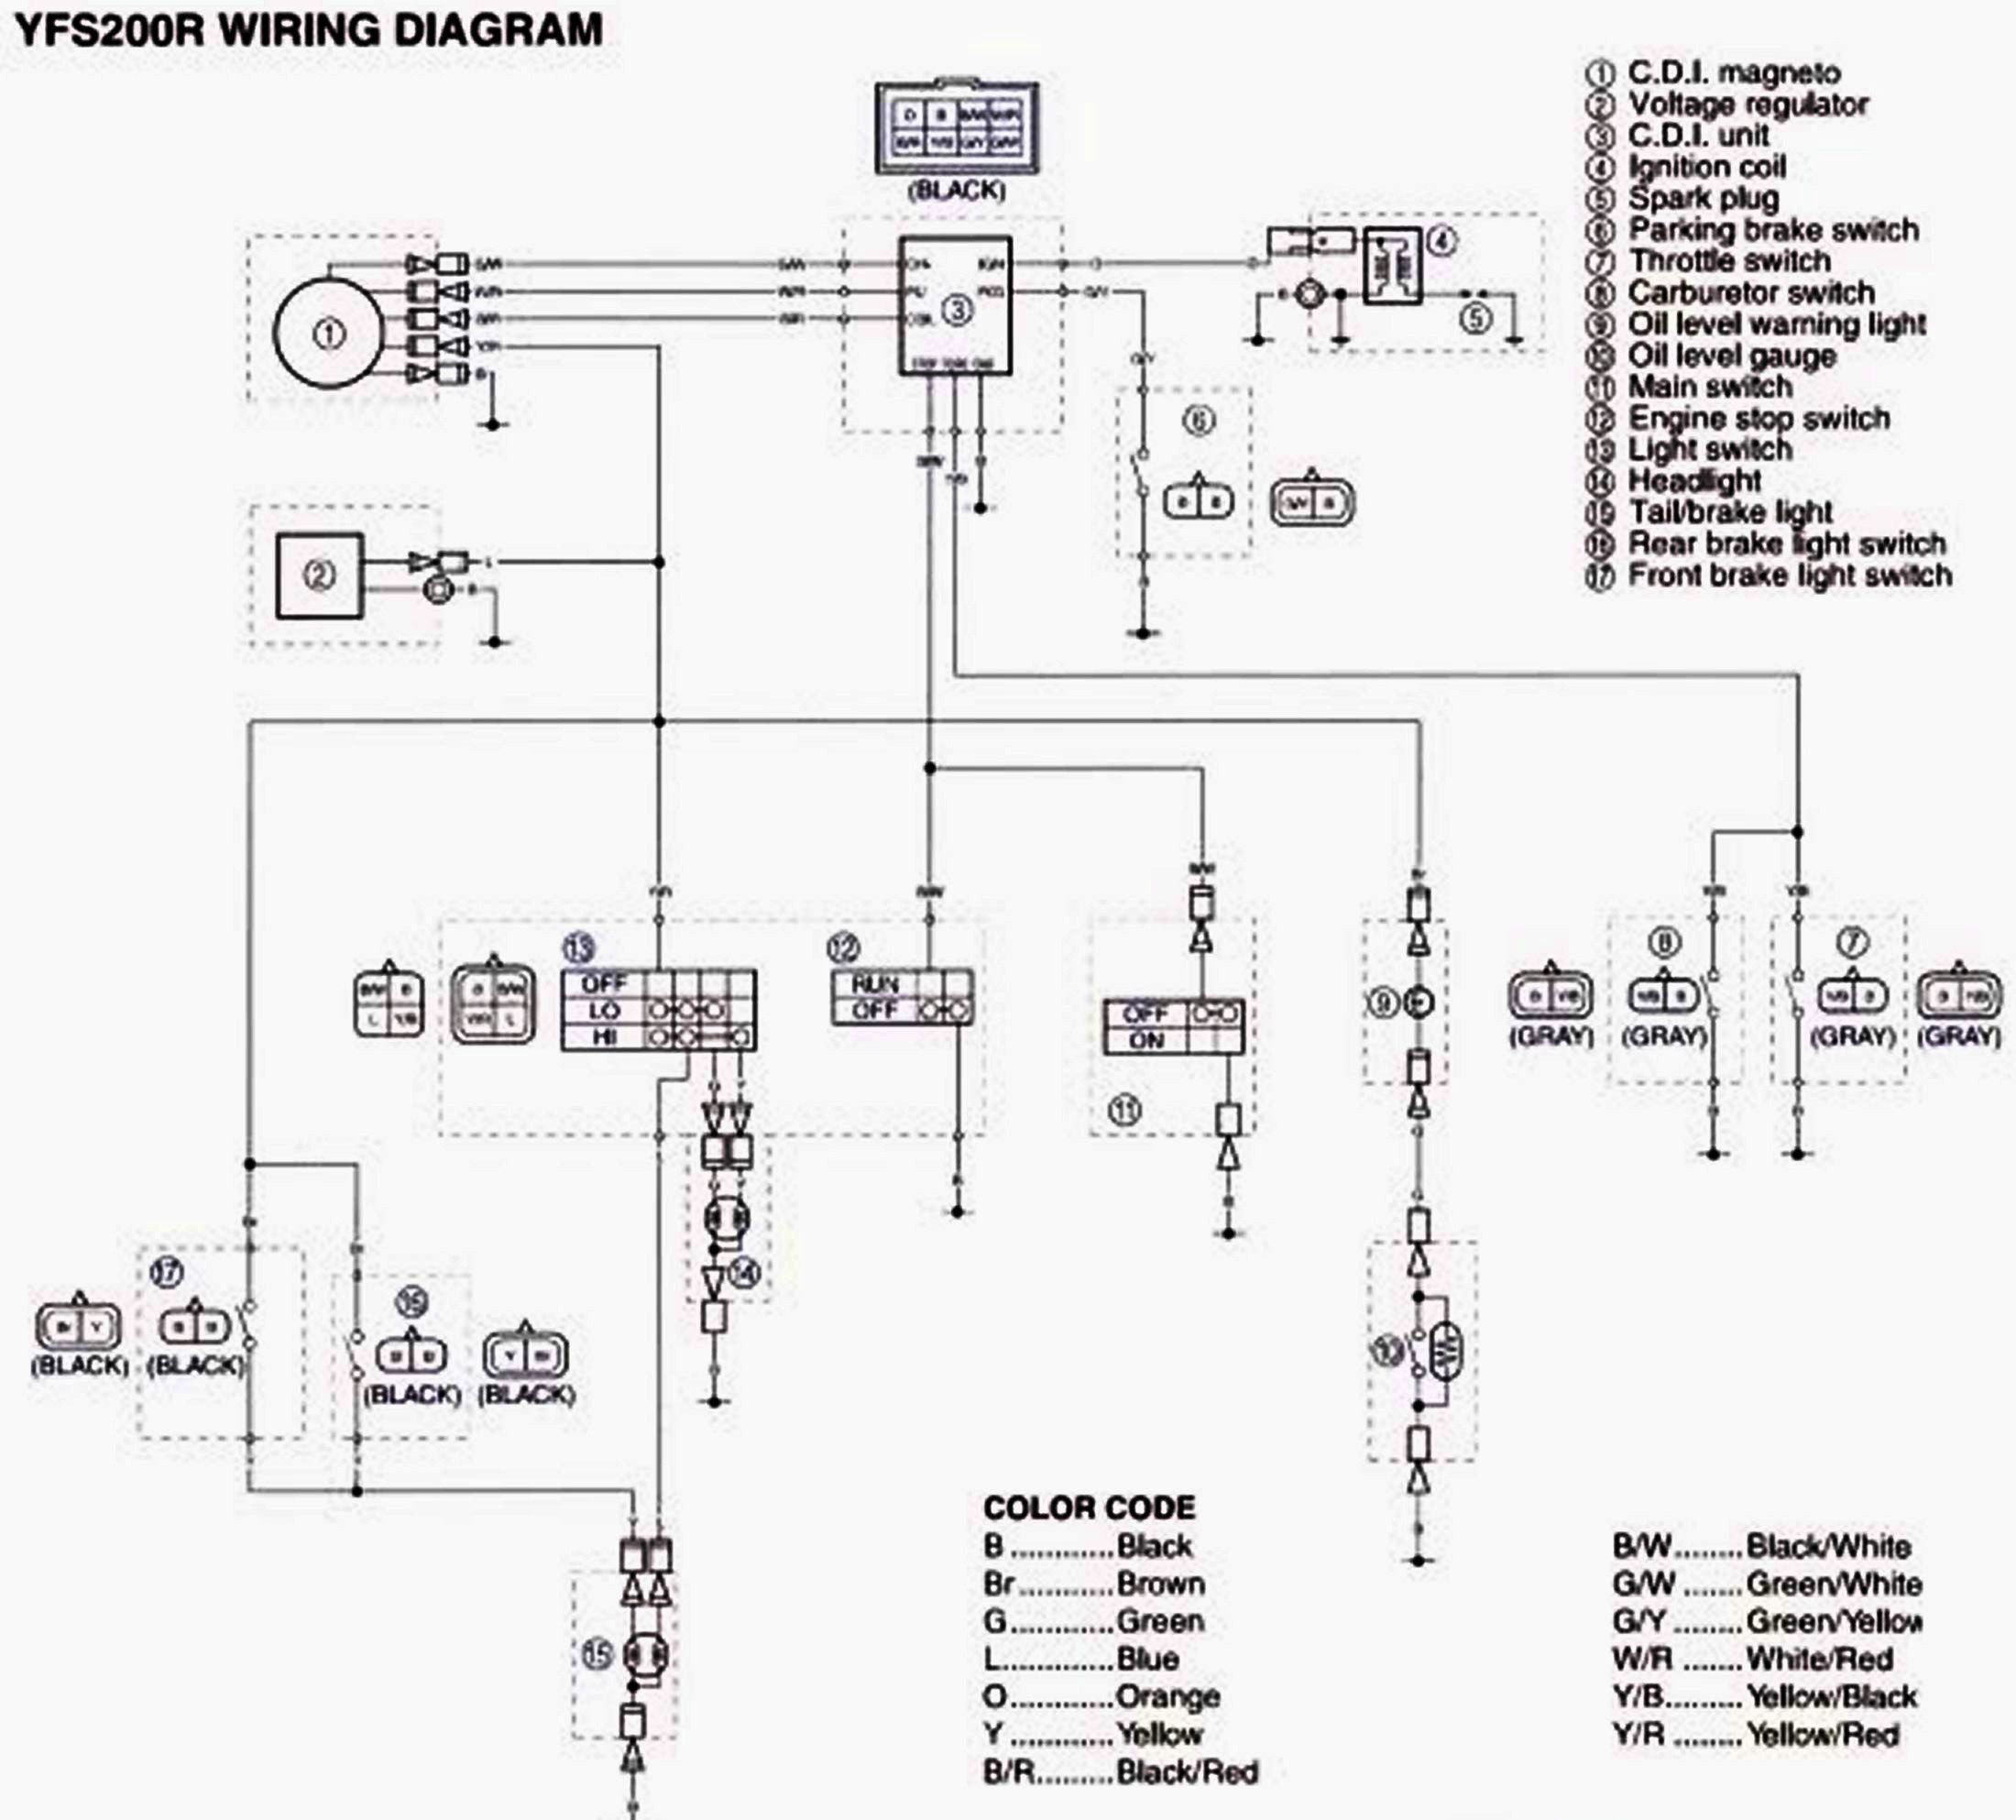 Honda Xr200r Wiring Diagram On Stator 4 Wire Regulator 1994 Yamaha Blaster Library Stock Diagrams Blasterforum Com Rh 2002 200 2005